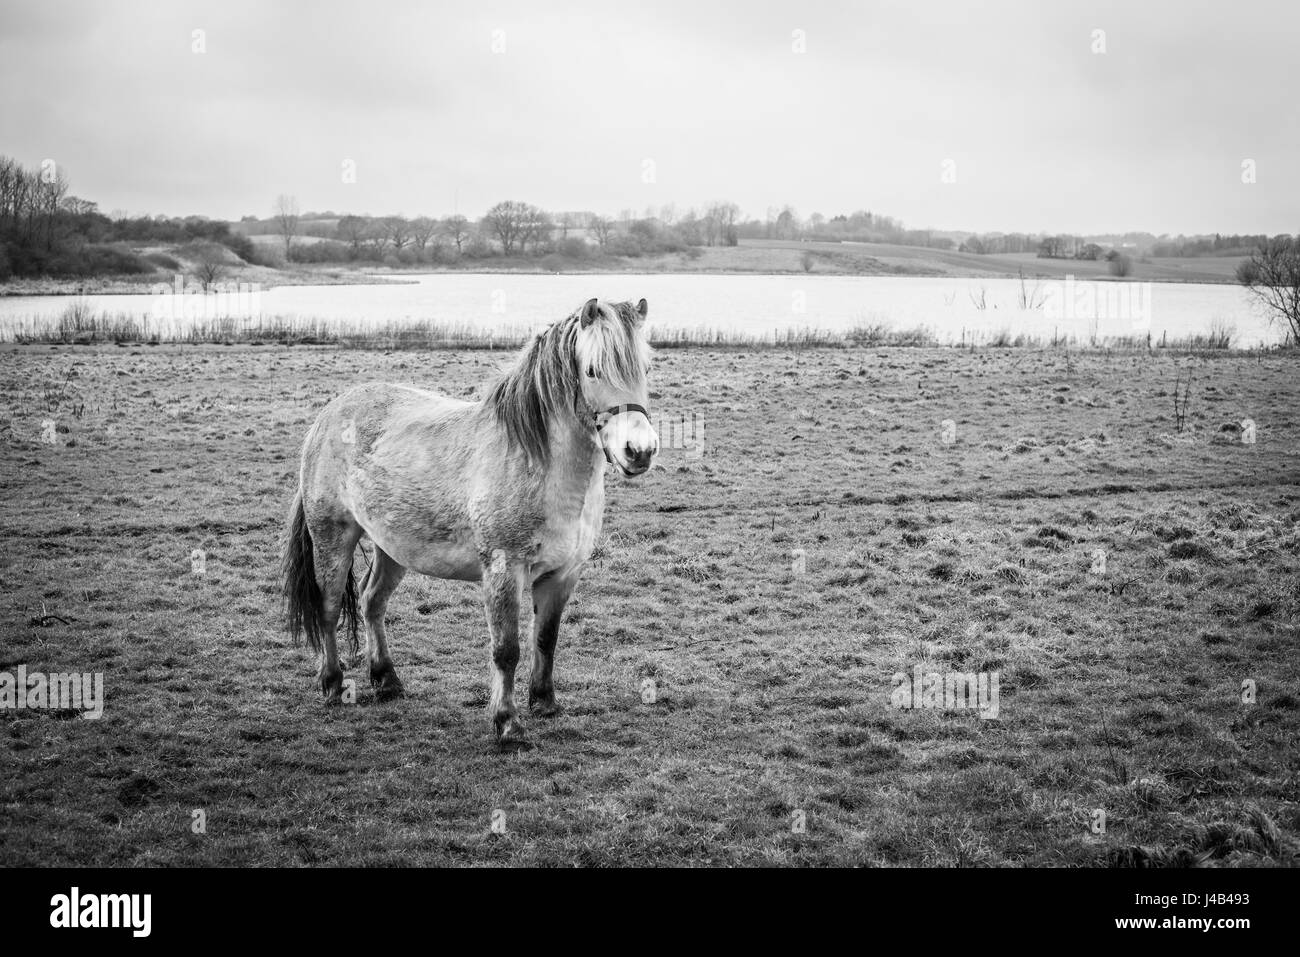 Small horse on a field by a lake in black and white colors in a rural environment - Stock Image